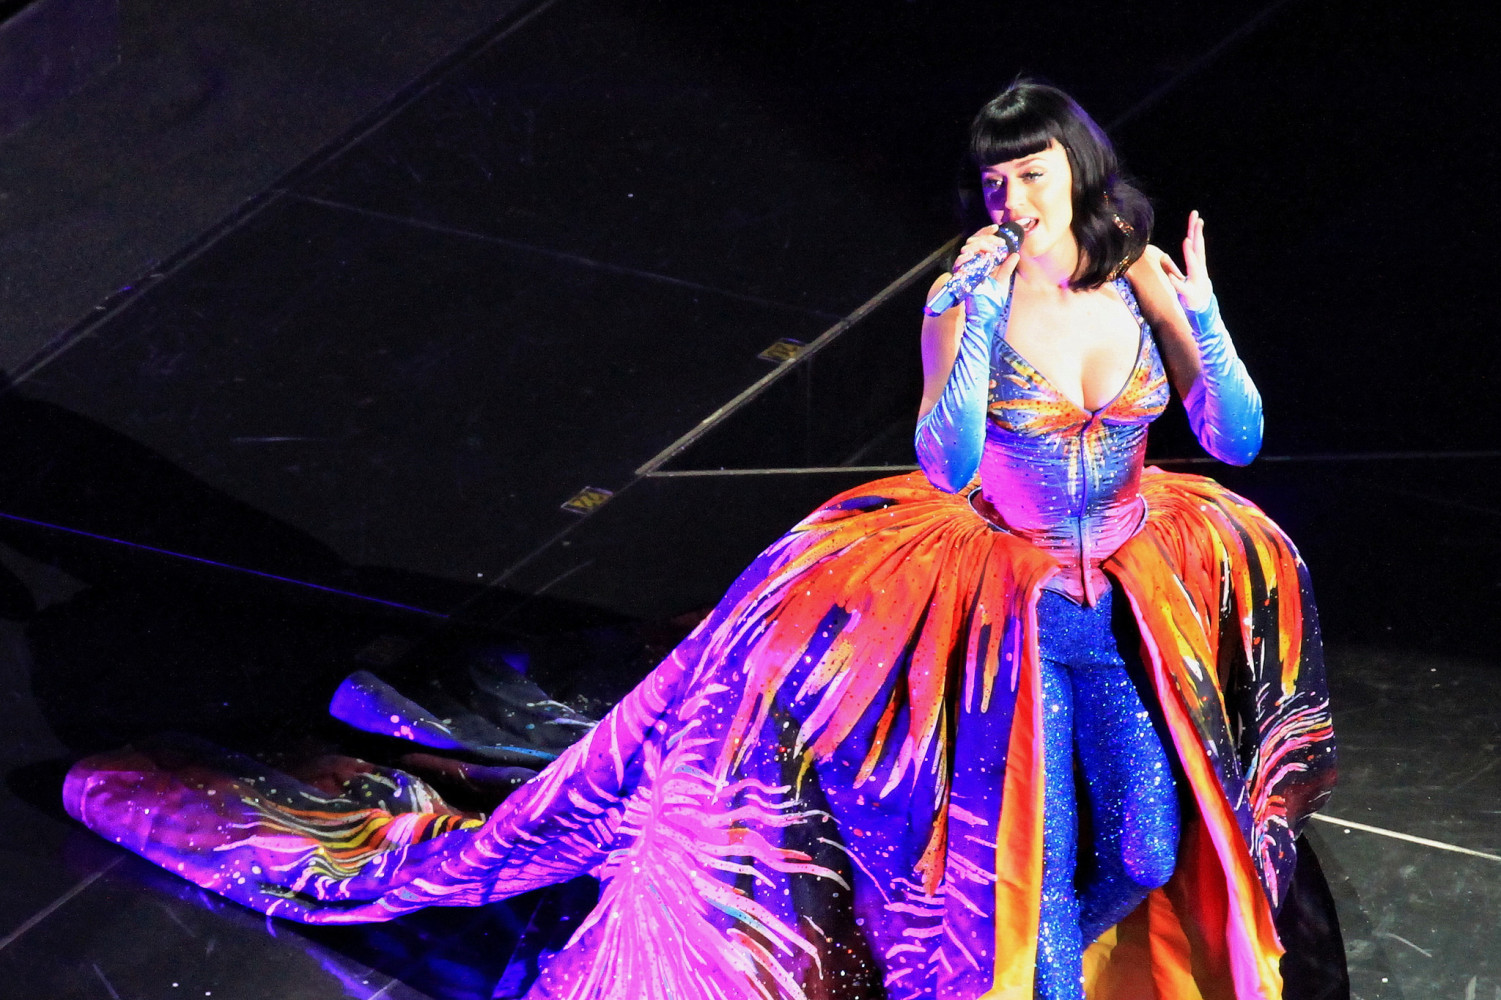 Katy Perry performing on the Prismatic World Tour. Photo via Sleepyibis on Flickr.